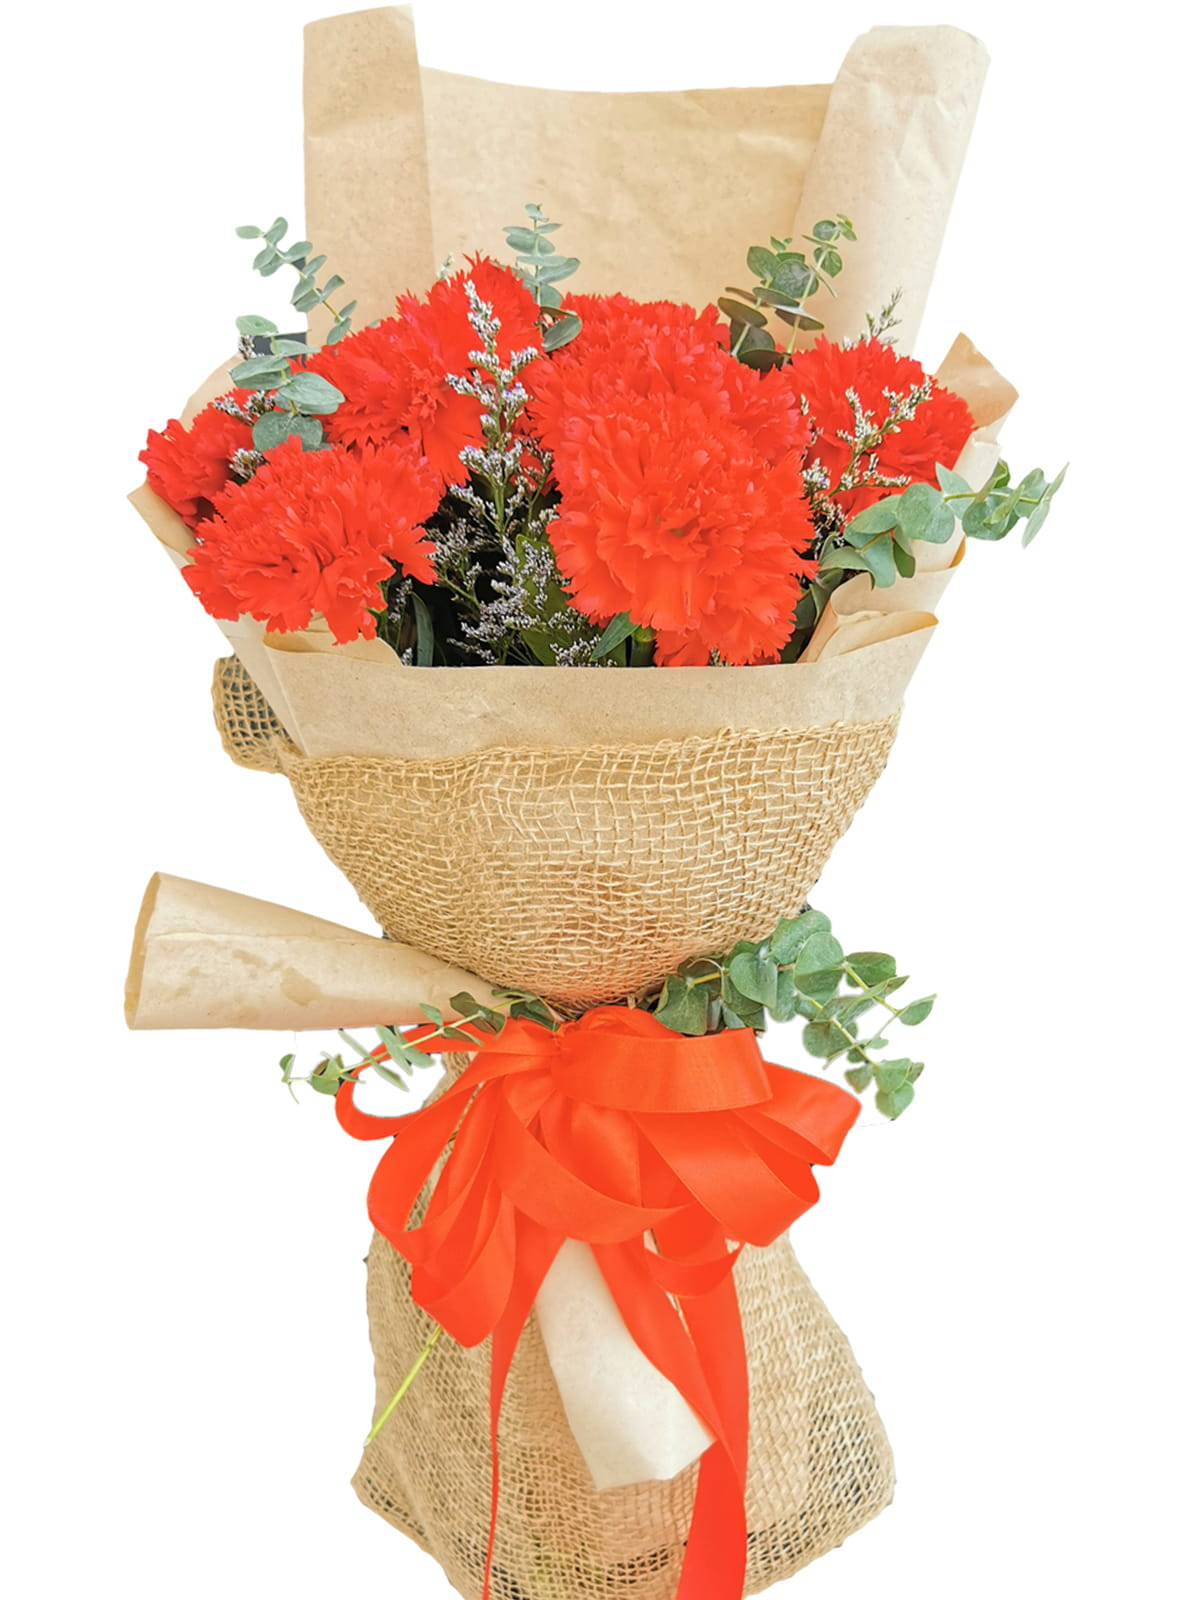 RED Carnation Kraft Jute